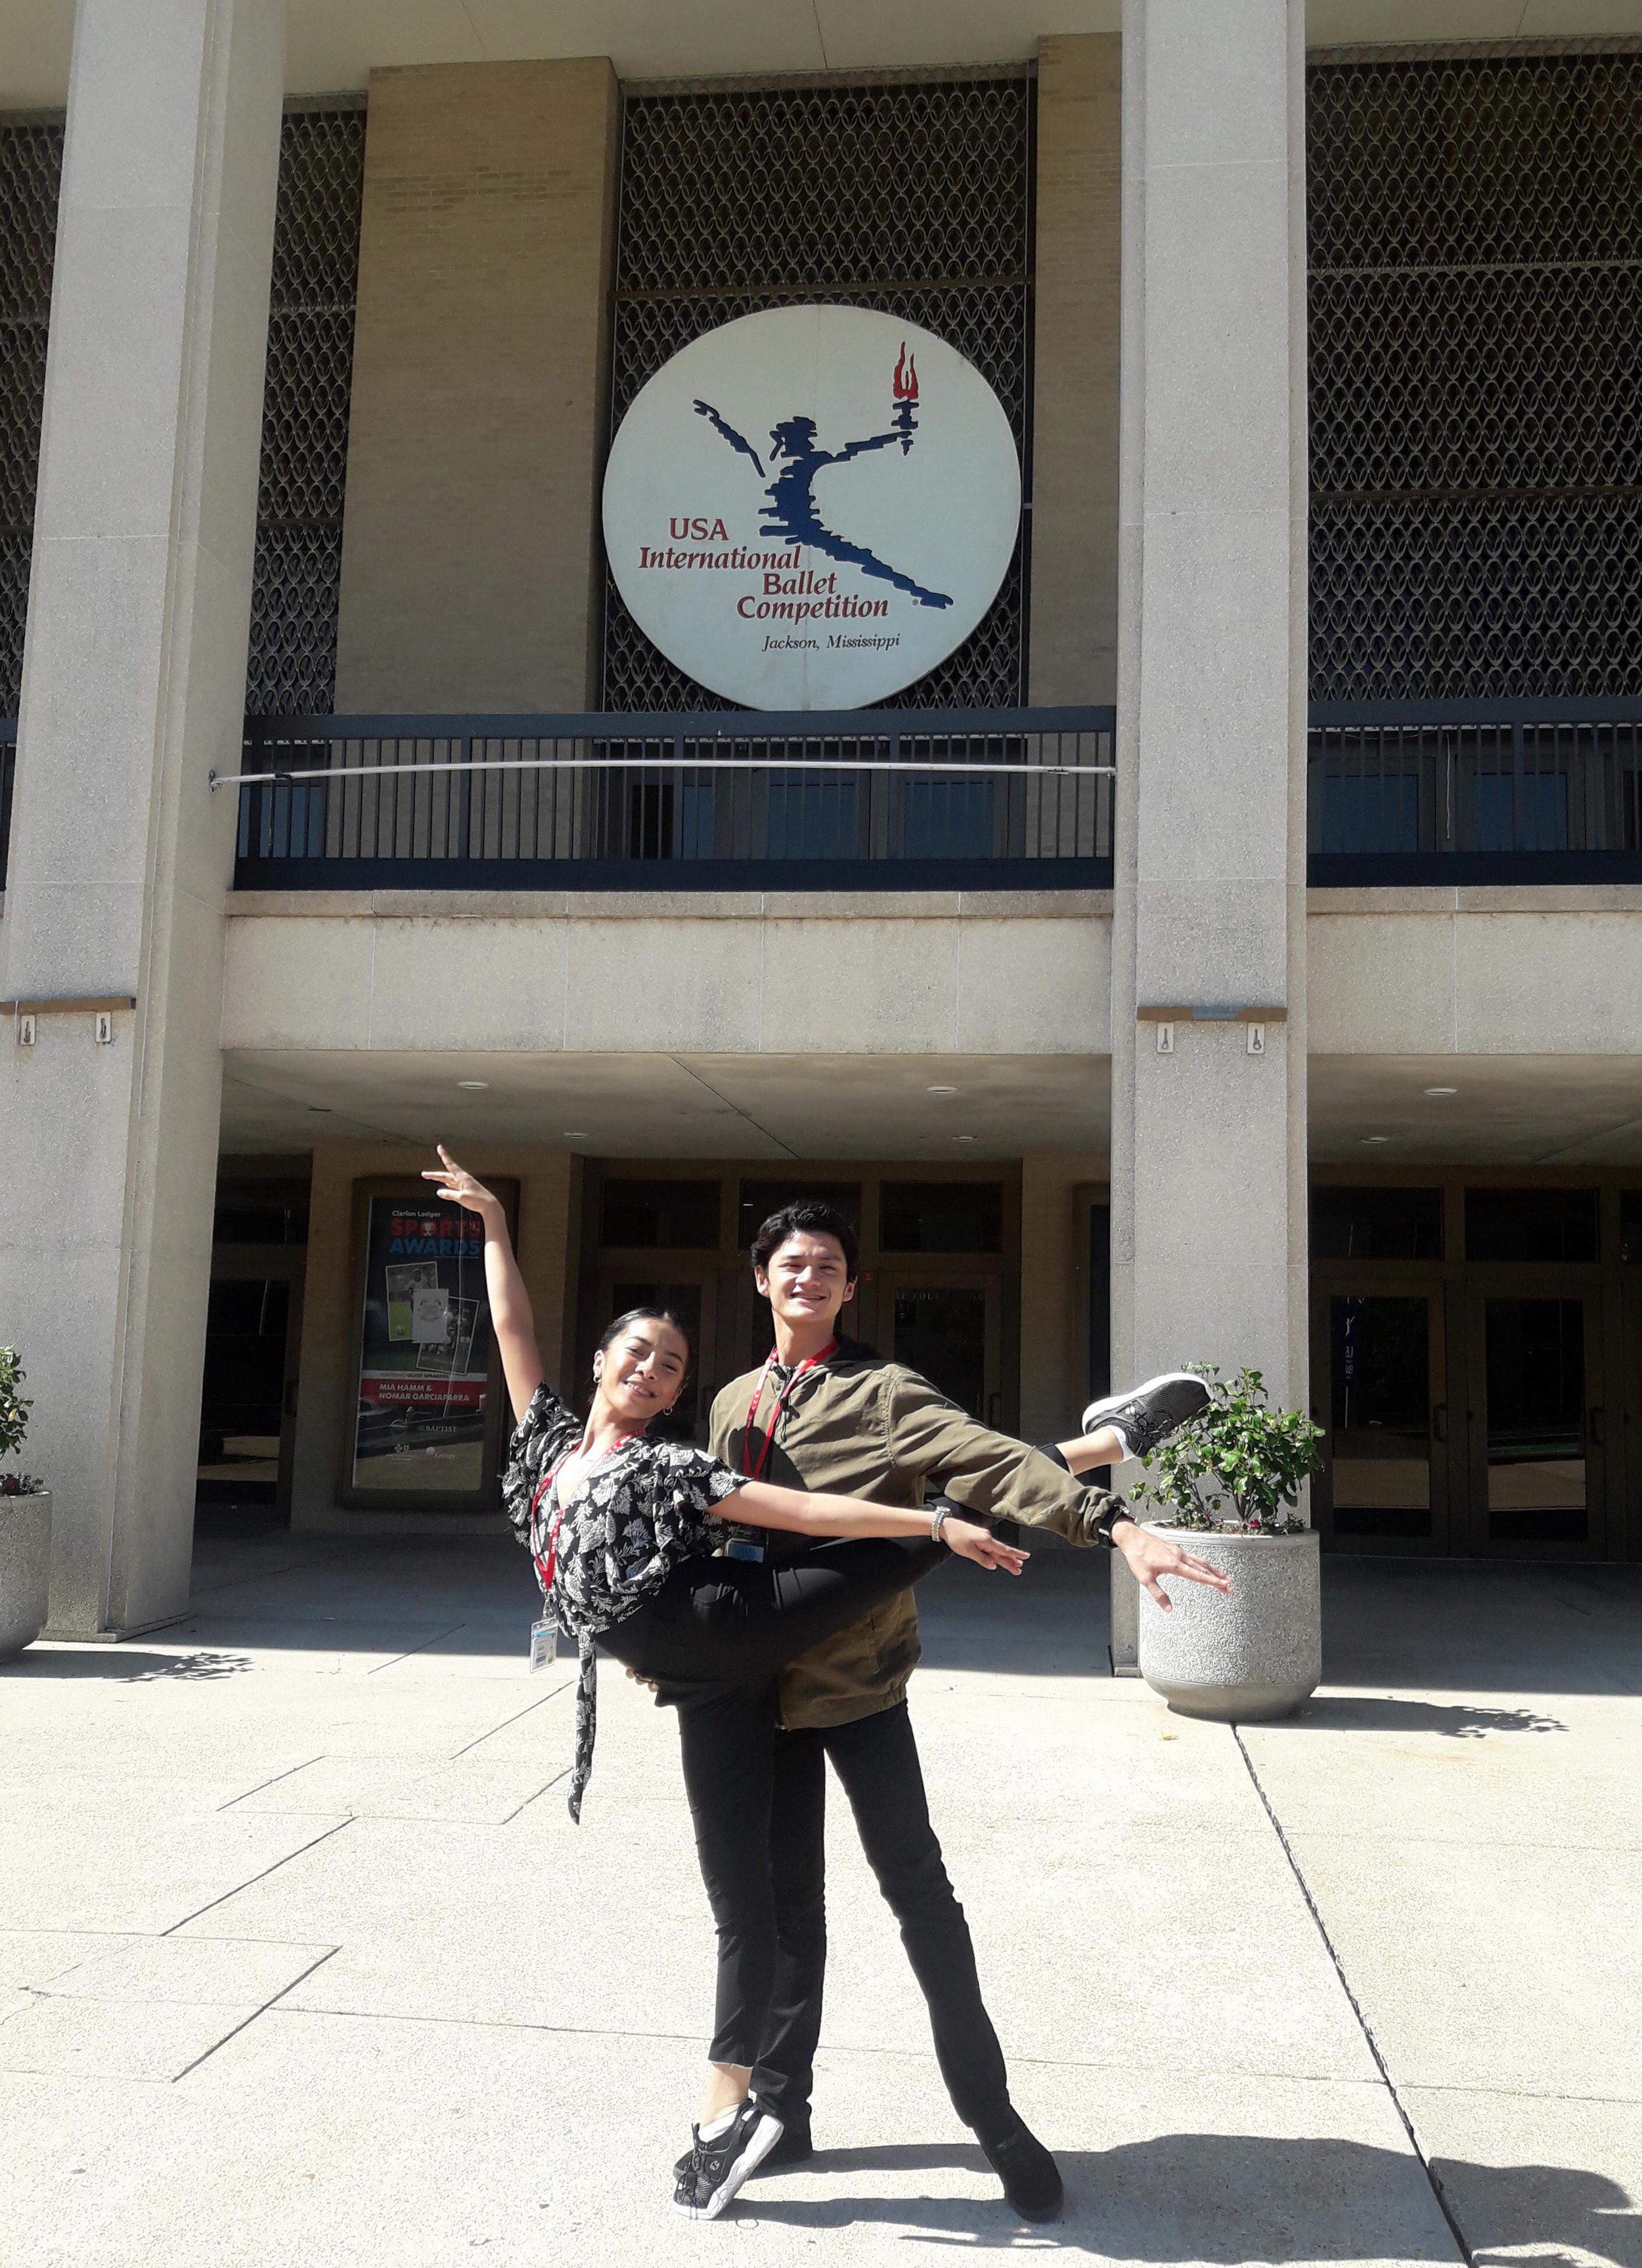 In Jackson at last: Nicole Barroso and Joshua Enciso strike a ballet pose in front of the Thalia Mara Hall, venue of the 11th USA International Ballet Competition. Photo by Osias Barroso.